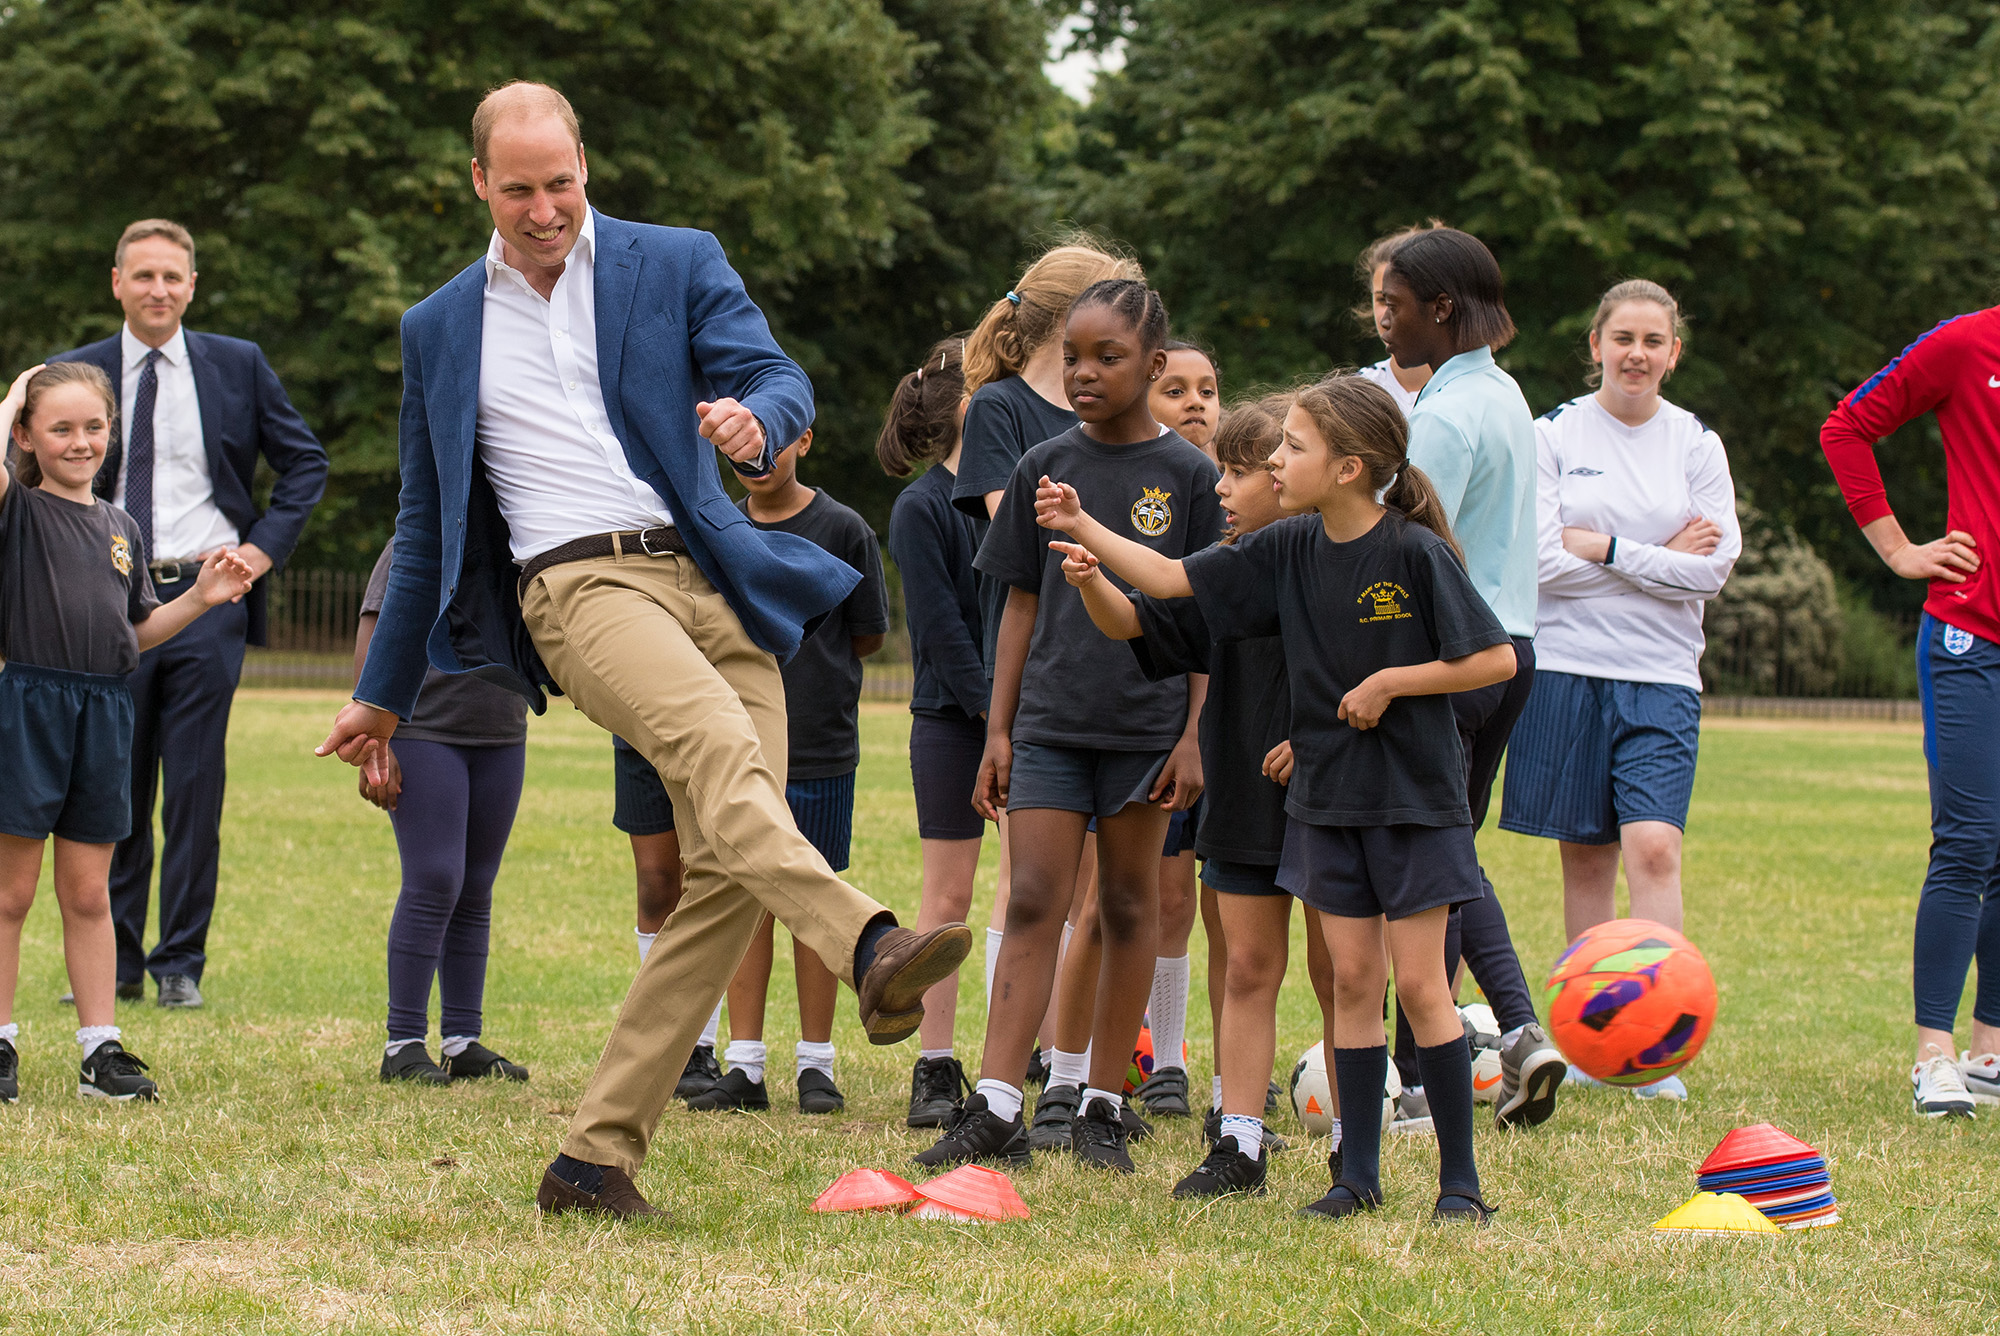 The Duke Of Cambridge Hosts A Good Luck Send Off For The England Women Football Team